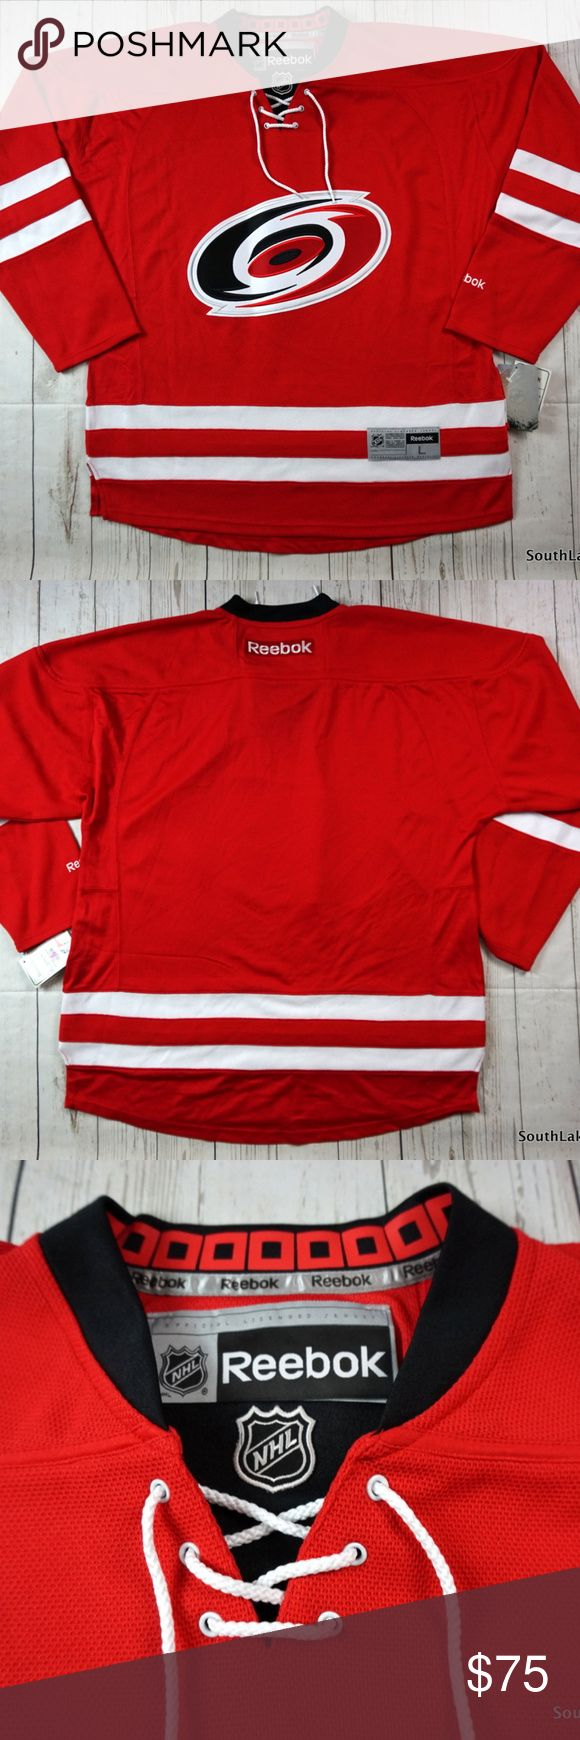 """Carolina Hurricanes NHL Premier Hockey Jersey Sz L Carolina Hurricanes NHL Premier Hockey Jersey Men's Large  REEBOK NHL CAROLINA HURRICANES MEN RED PREMIER JERSEY - SZ XL NWT  Brand New With Tags!  Brand: Reebok Size: Men's Large Material: 100% Polyester  Detailed Measurements: (Front Side of Garment has been measured laying flat on a table)  Measurements  Sleeves:             31.5"""" inches Chest:                 29"""" inches Length:              33.5"""" inches  Ships in 24 hrs or less from a…"""